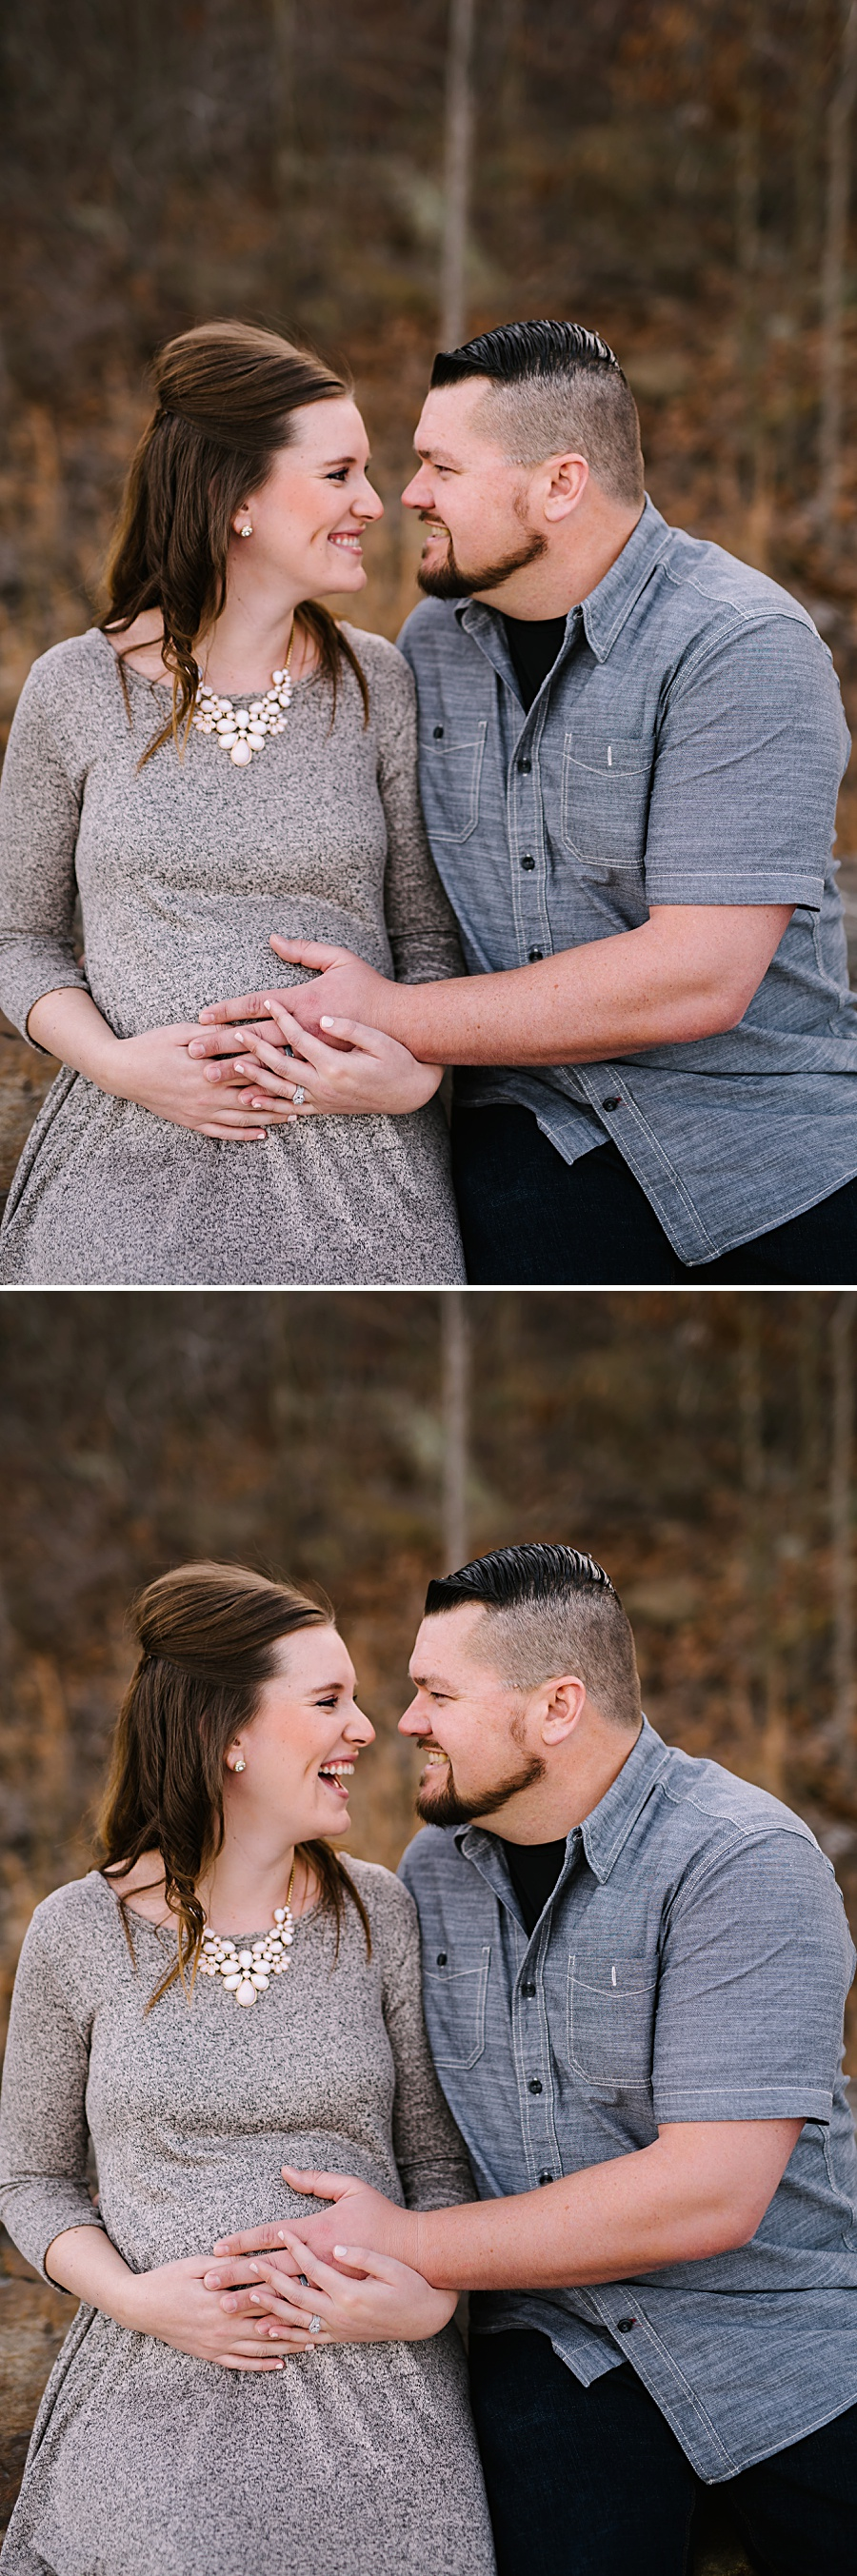 Oklahoma-Tulsa-Maternity-photographer